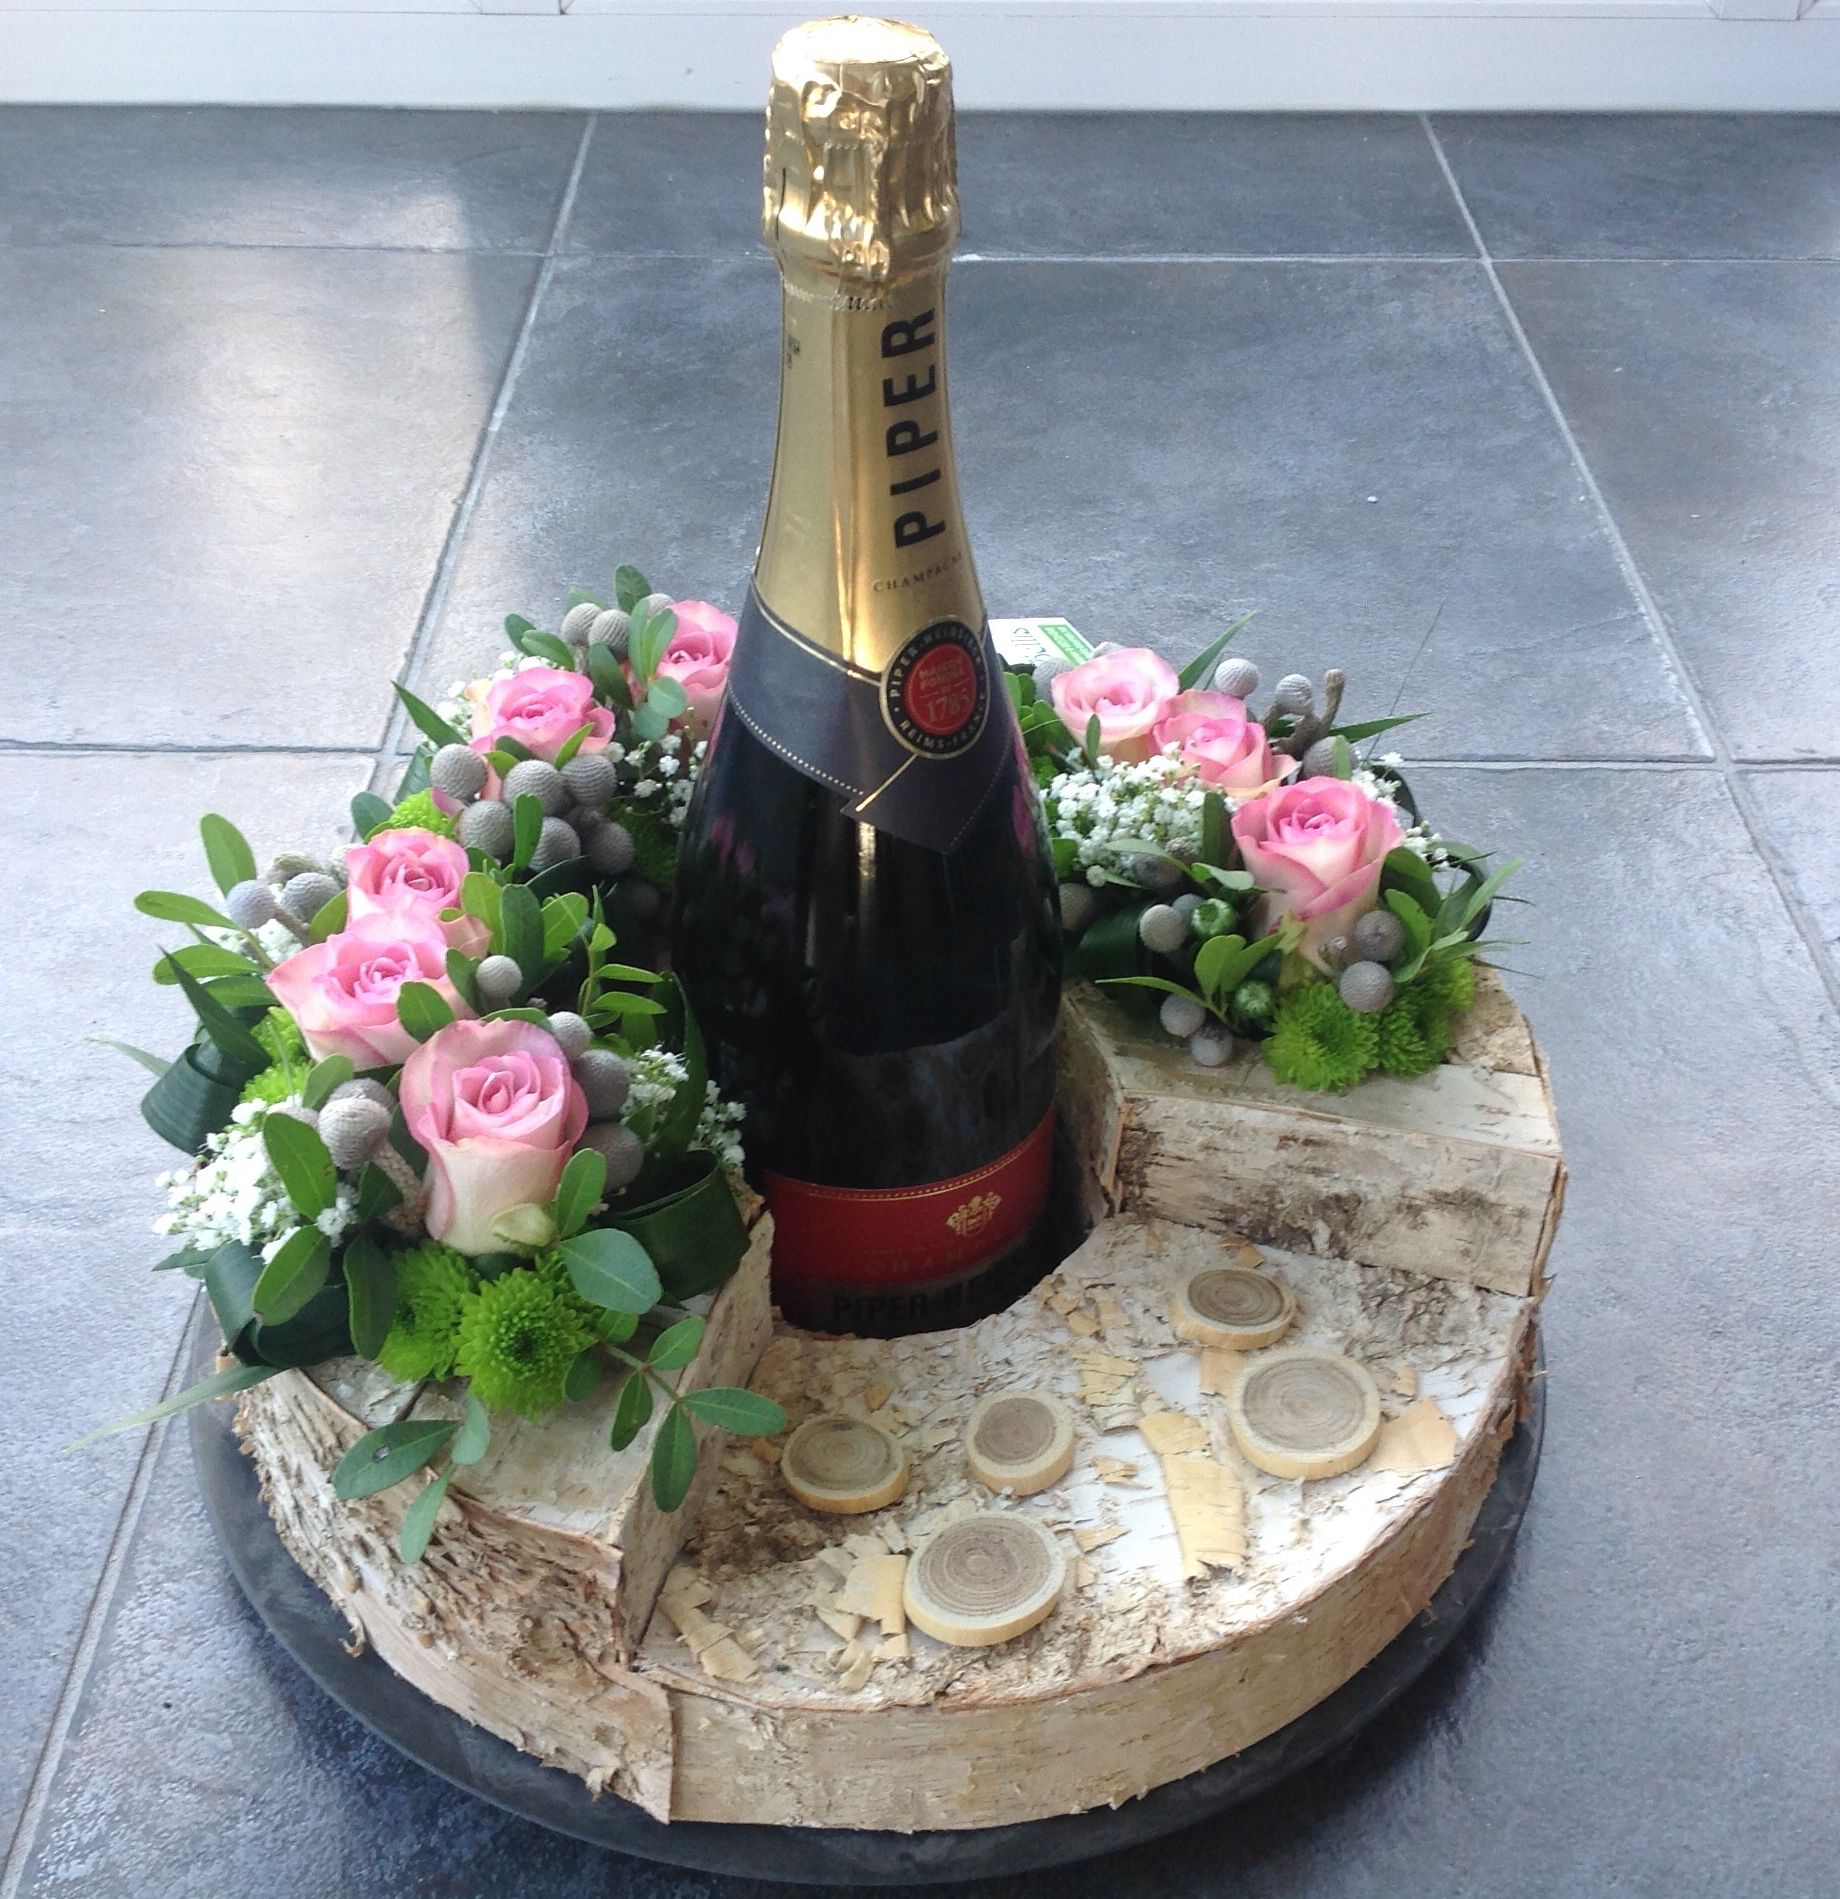 Flower Arrangements In Wine Bottles: Champagne Decoratief Verpakt.